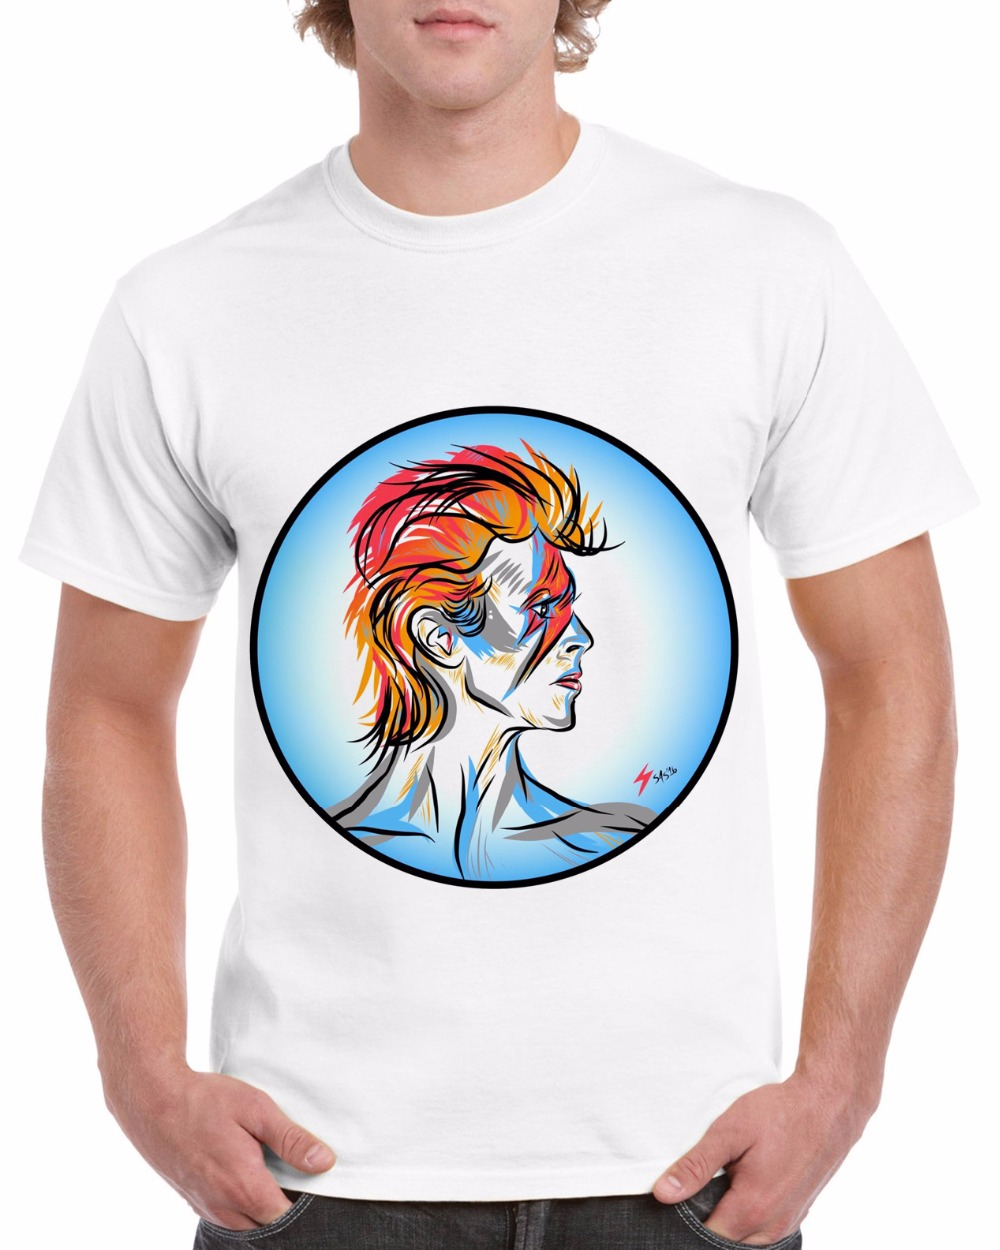 2018 Fashion David Bowie T Shirt for Men Anniversary Merchandise Shirt Short Sleeve Rock Legends Print Tee Drop shipper